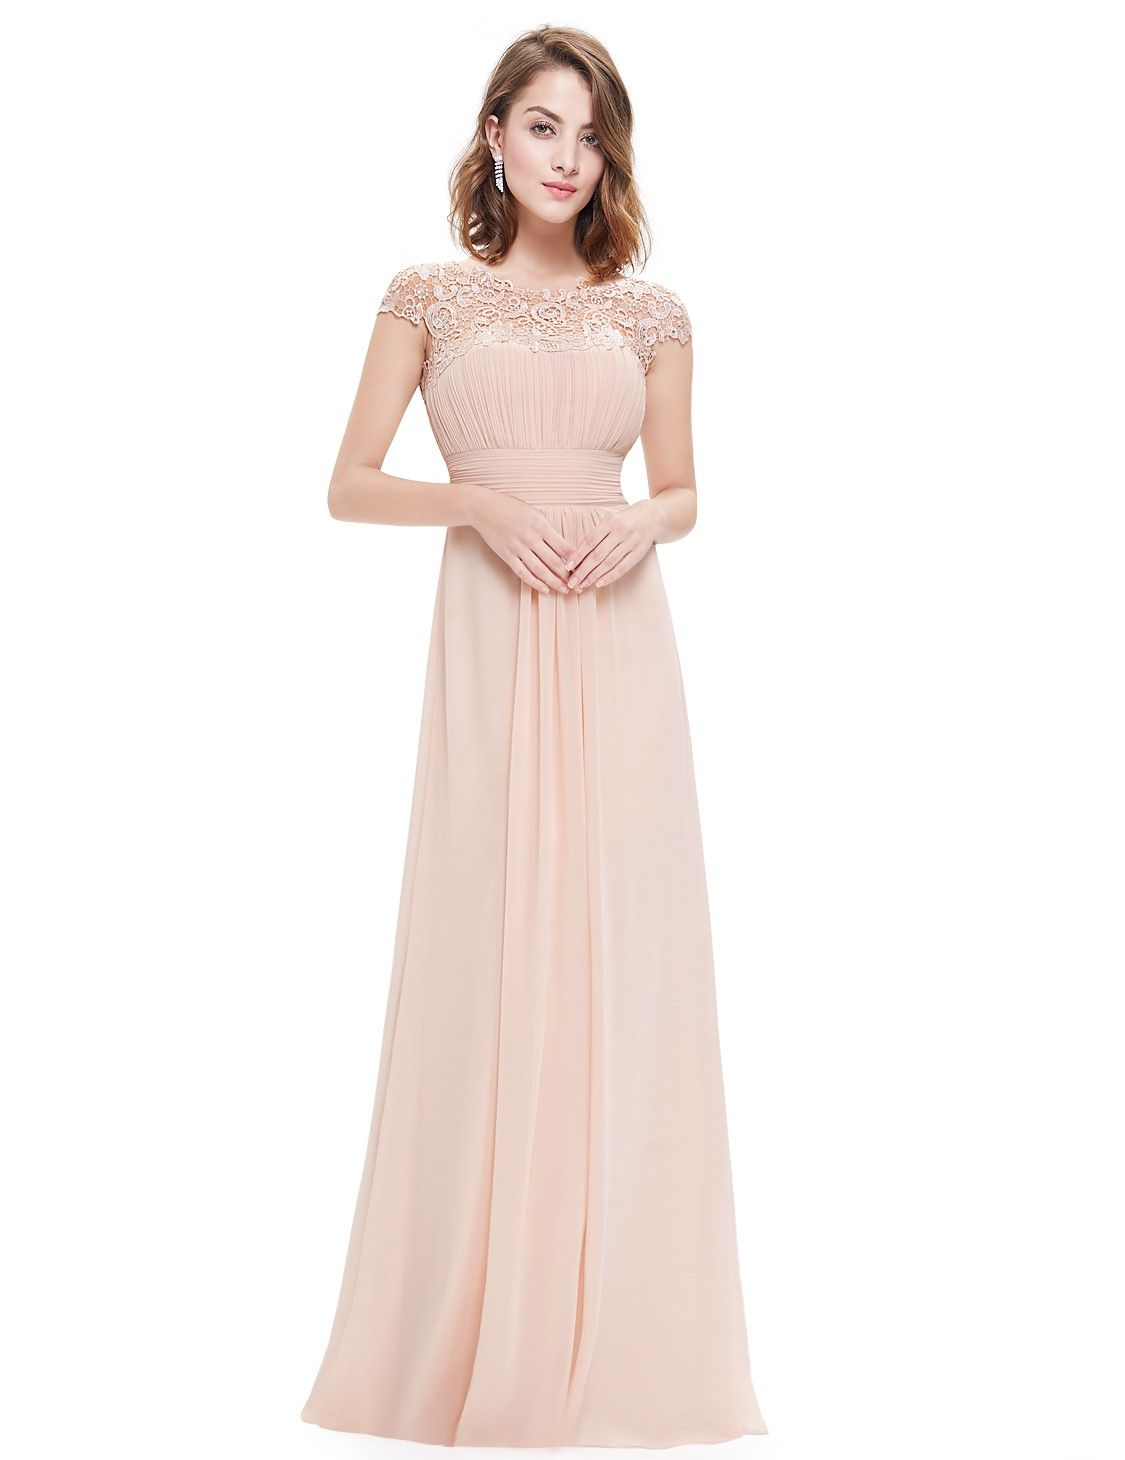 Lace cap sleeve evening gown cap gowns and wedding